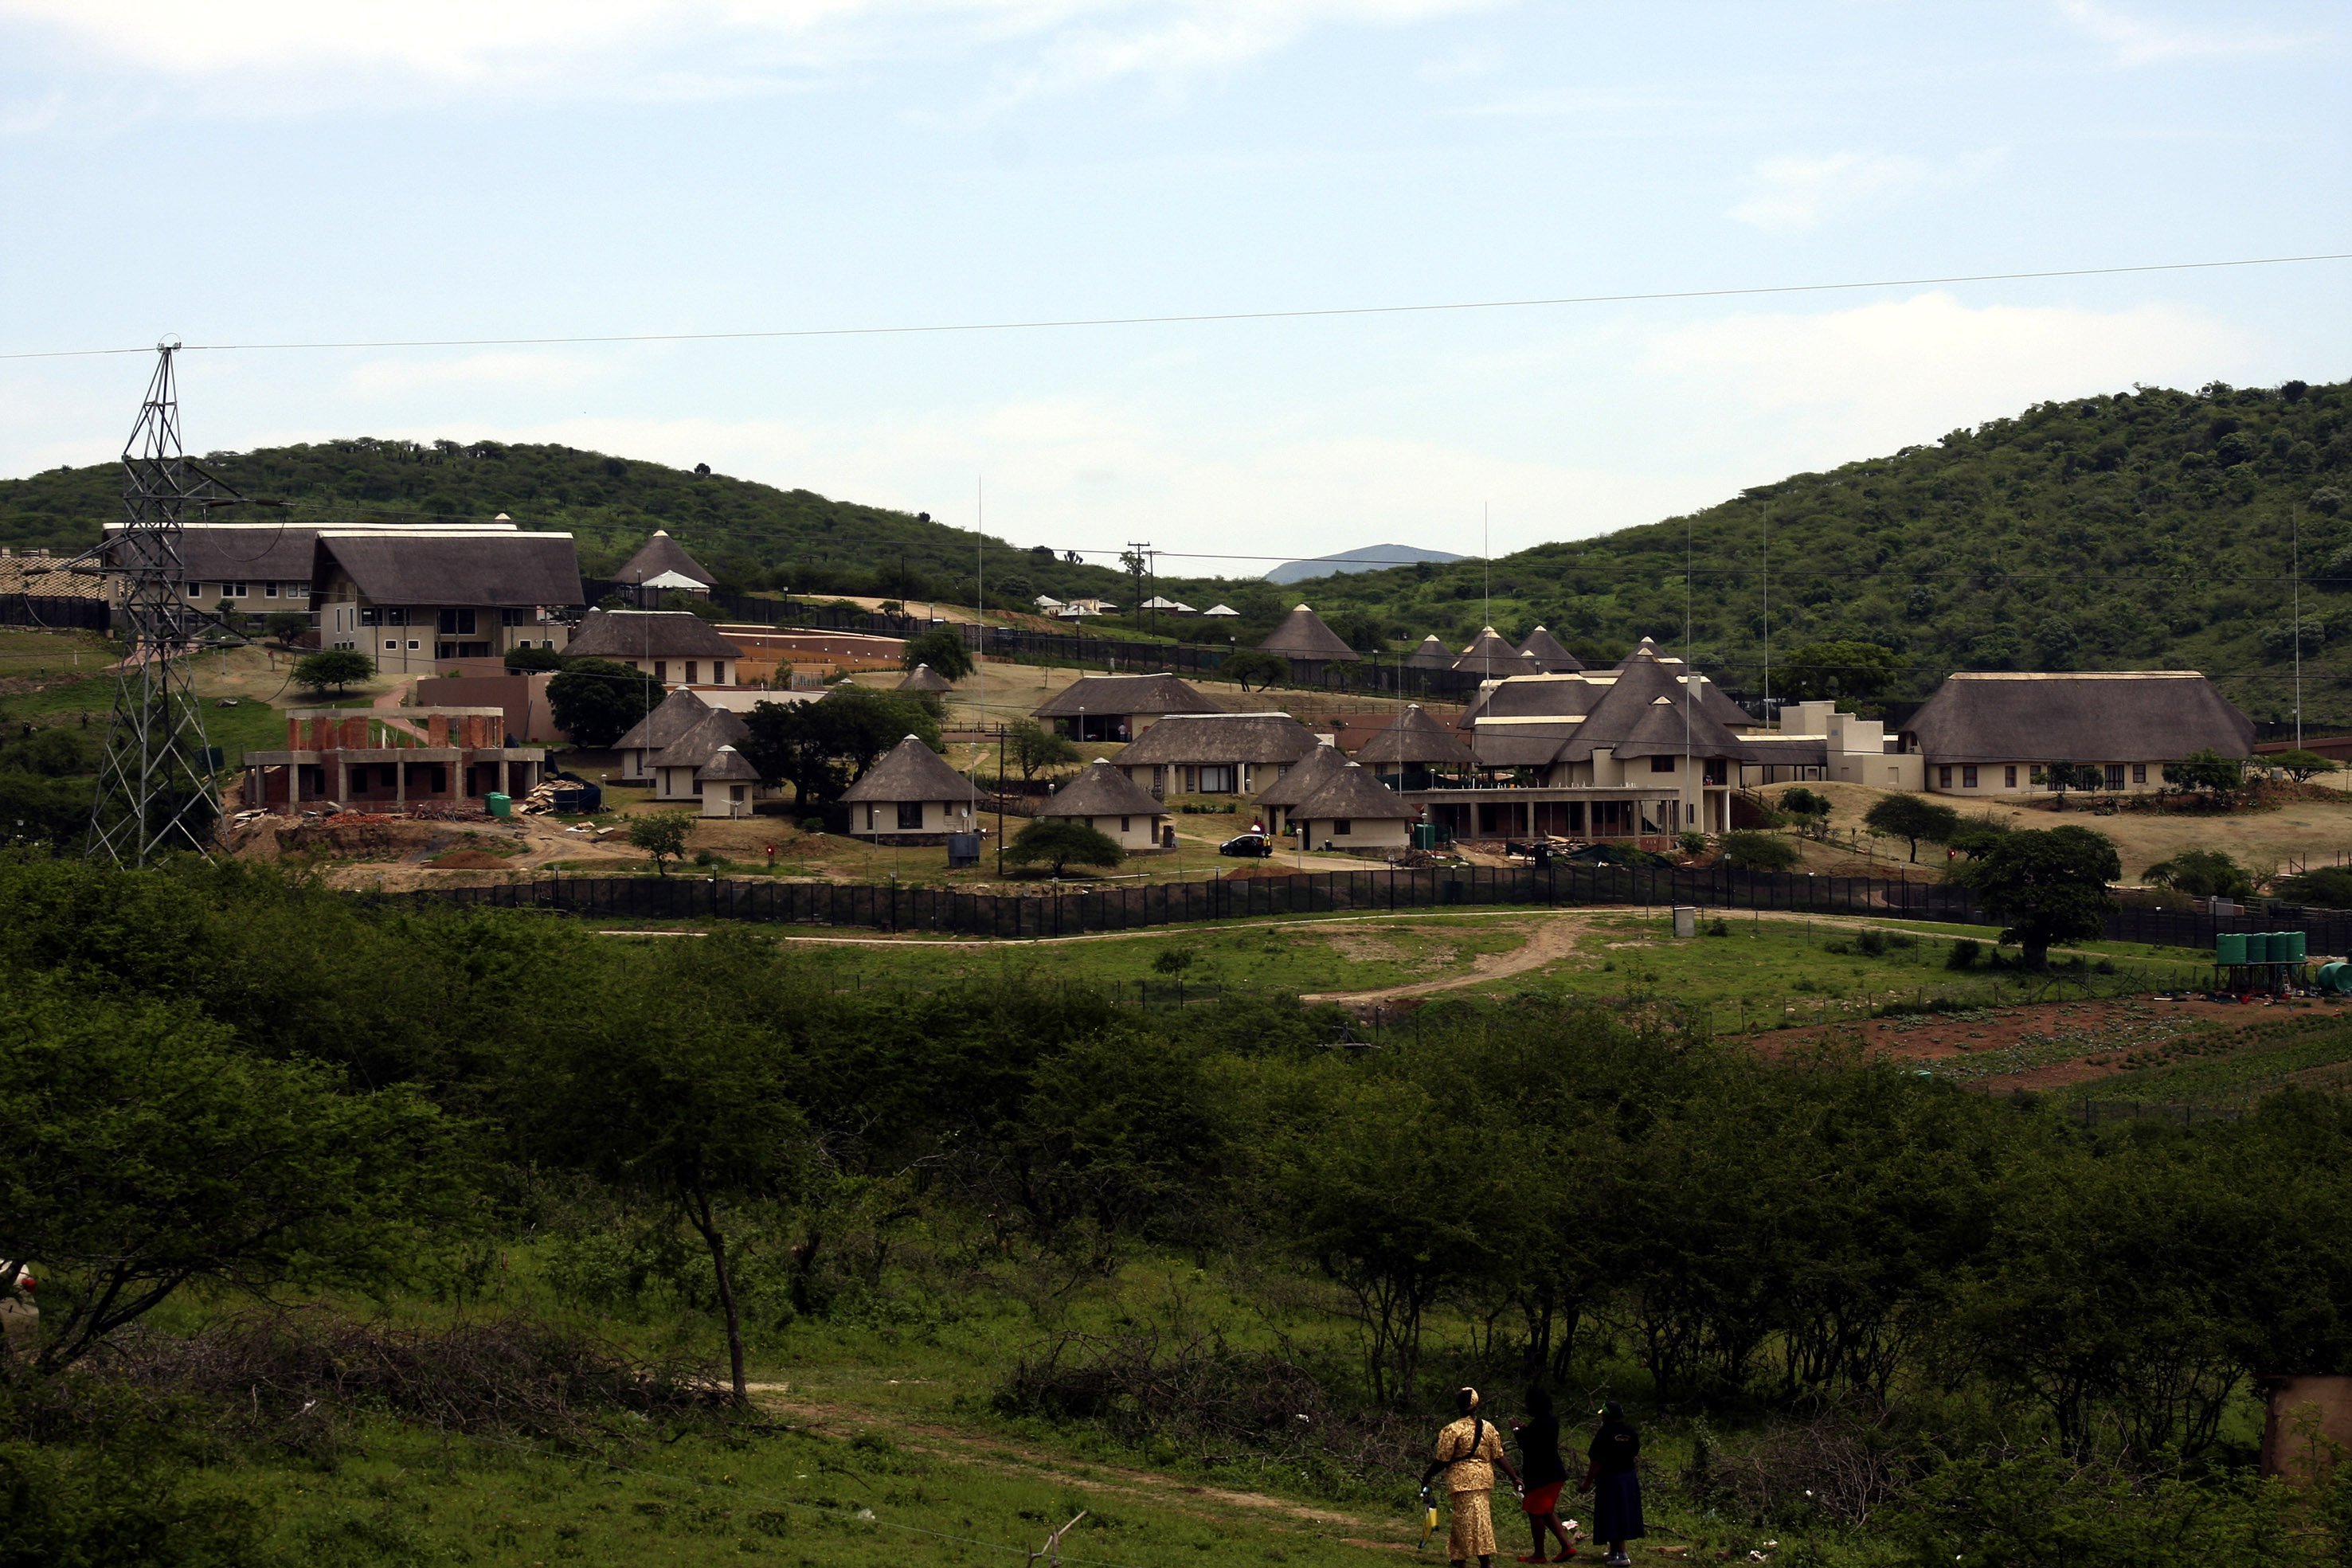 Cattle meant for poor allegedly sent to Zuma's Nkandla homestead